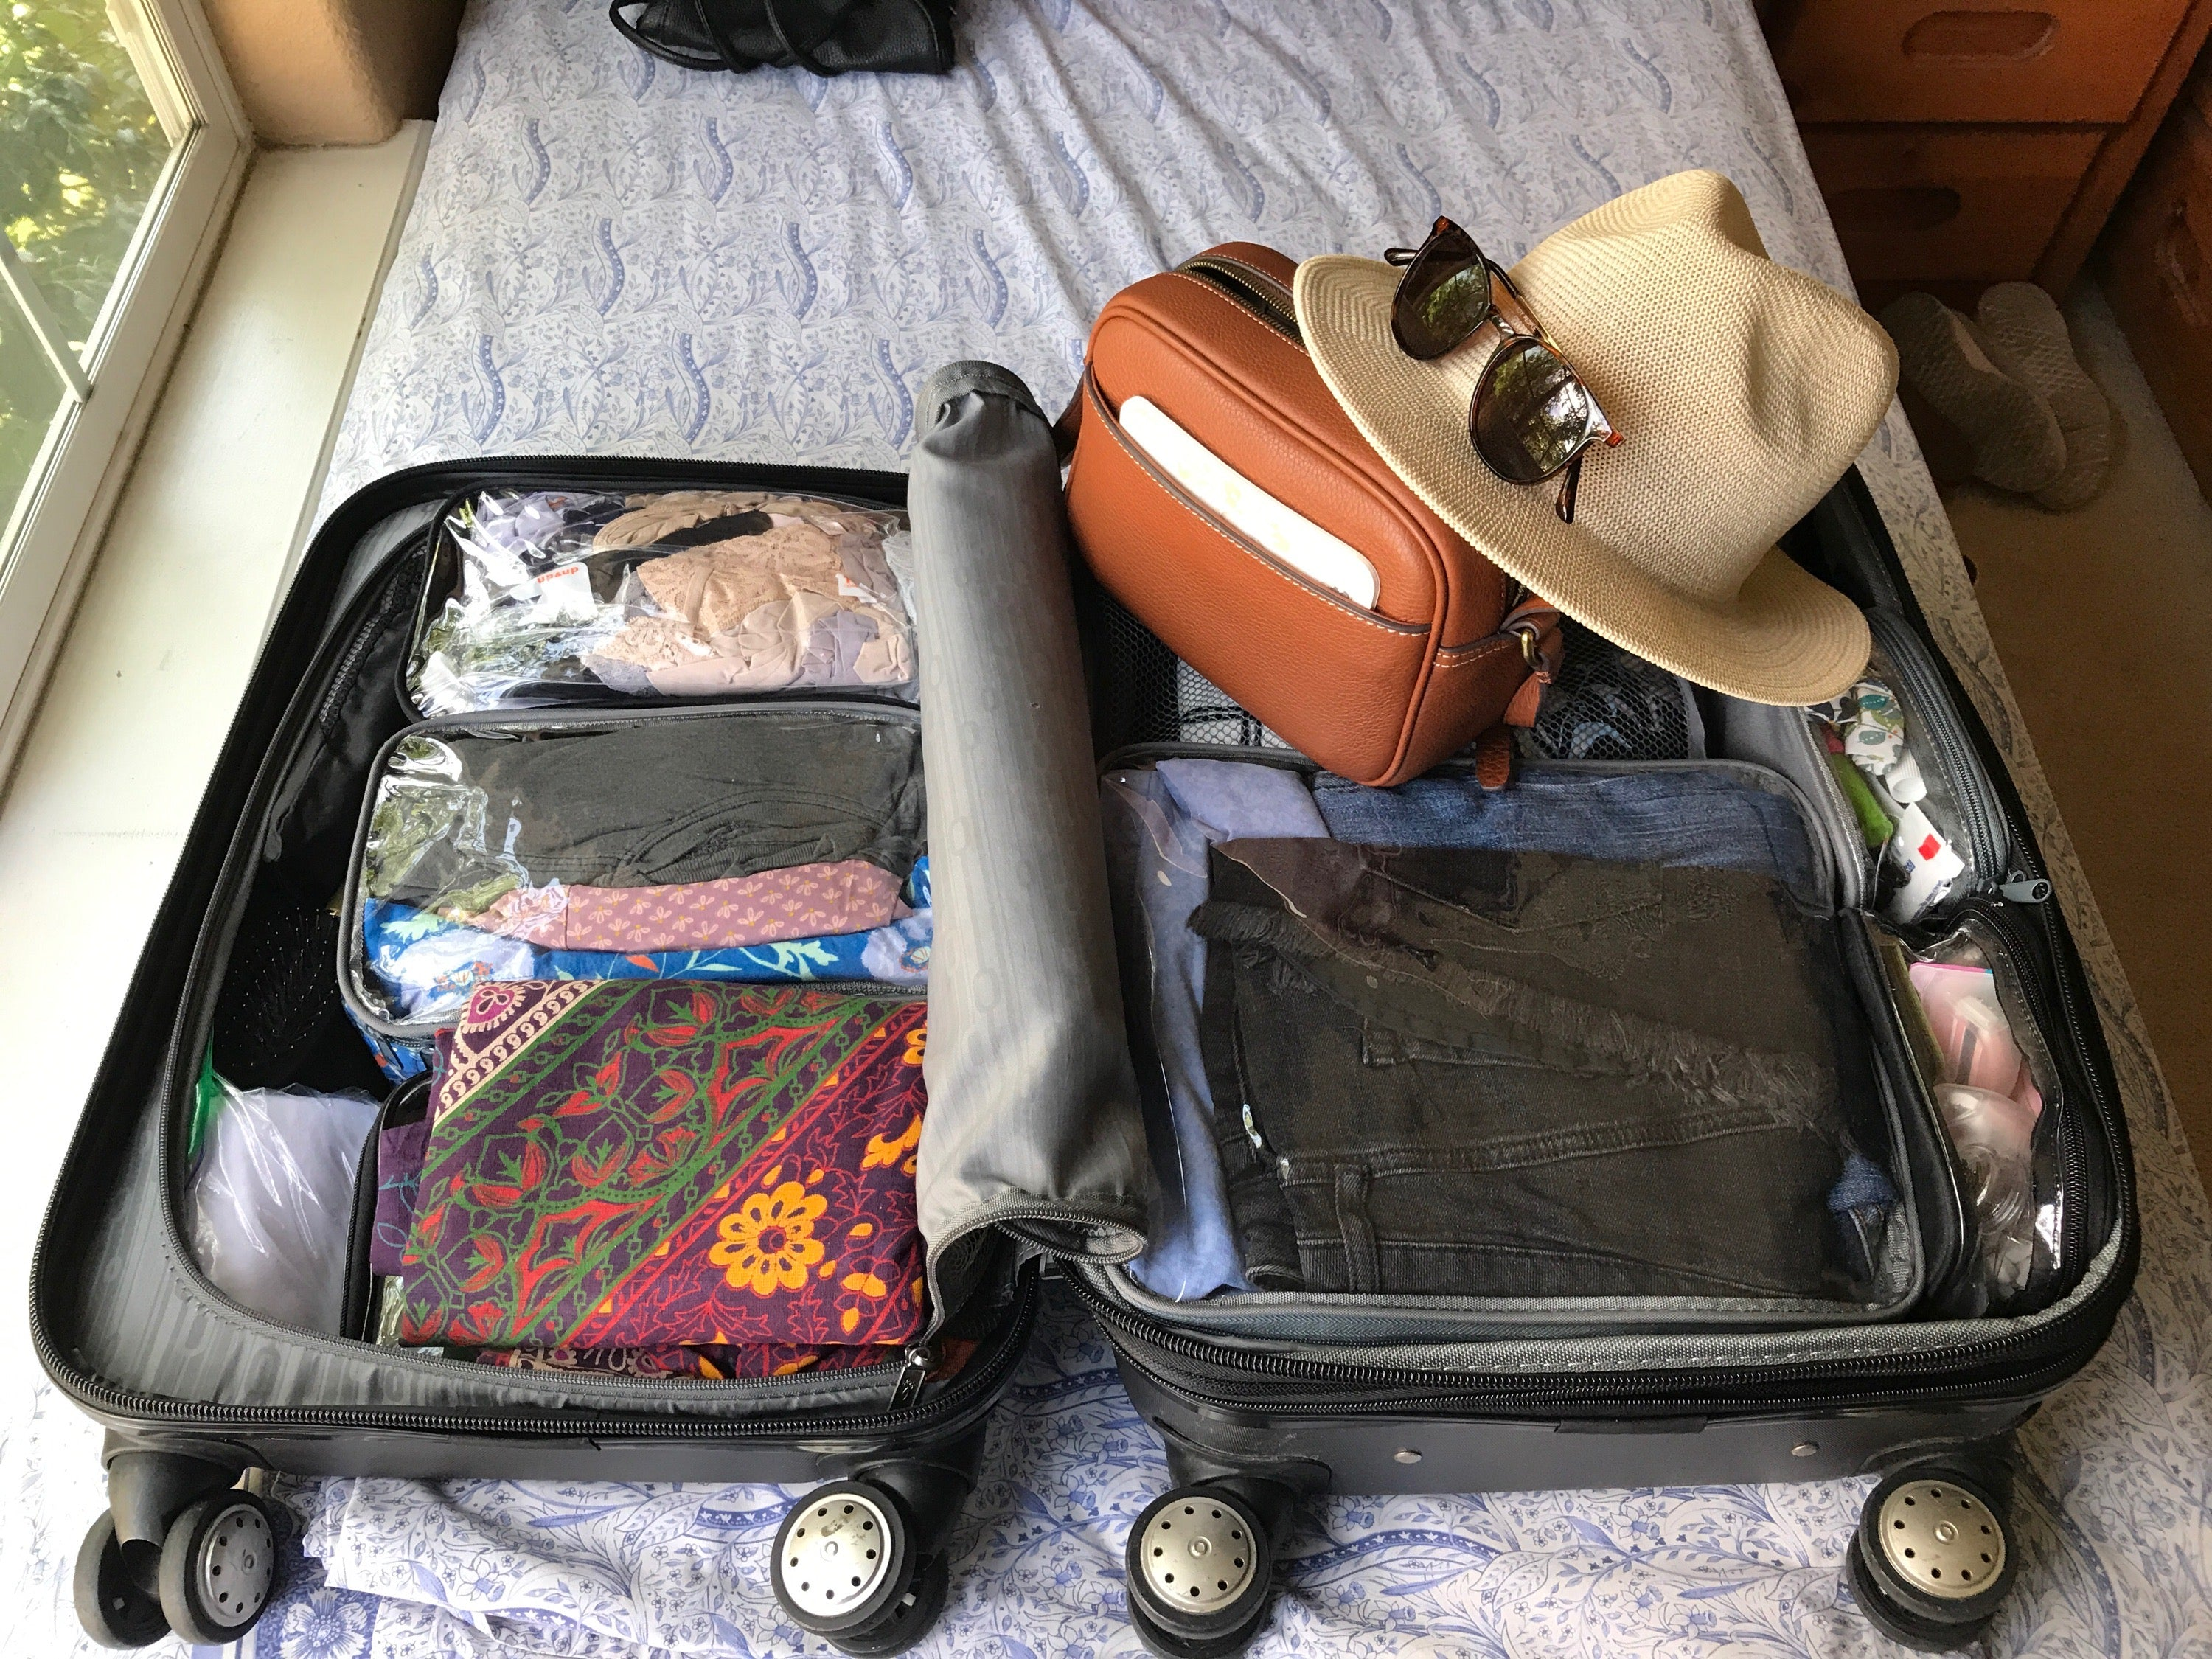 My carry on suitcase for 2 months of traveling through Europe in the summer! I took 1 Medium Cube, 2 Small Cubes, and 3 Extra Small cubes. It was perfect!